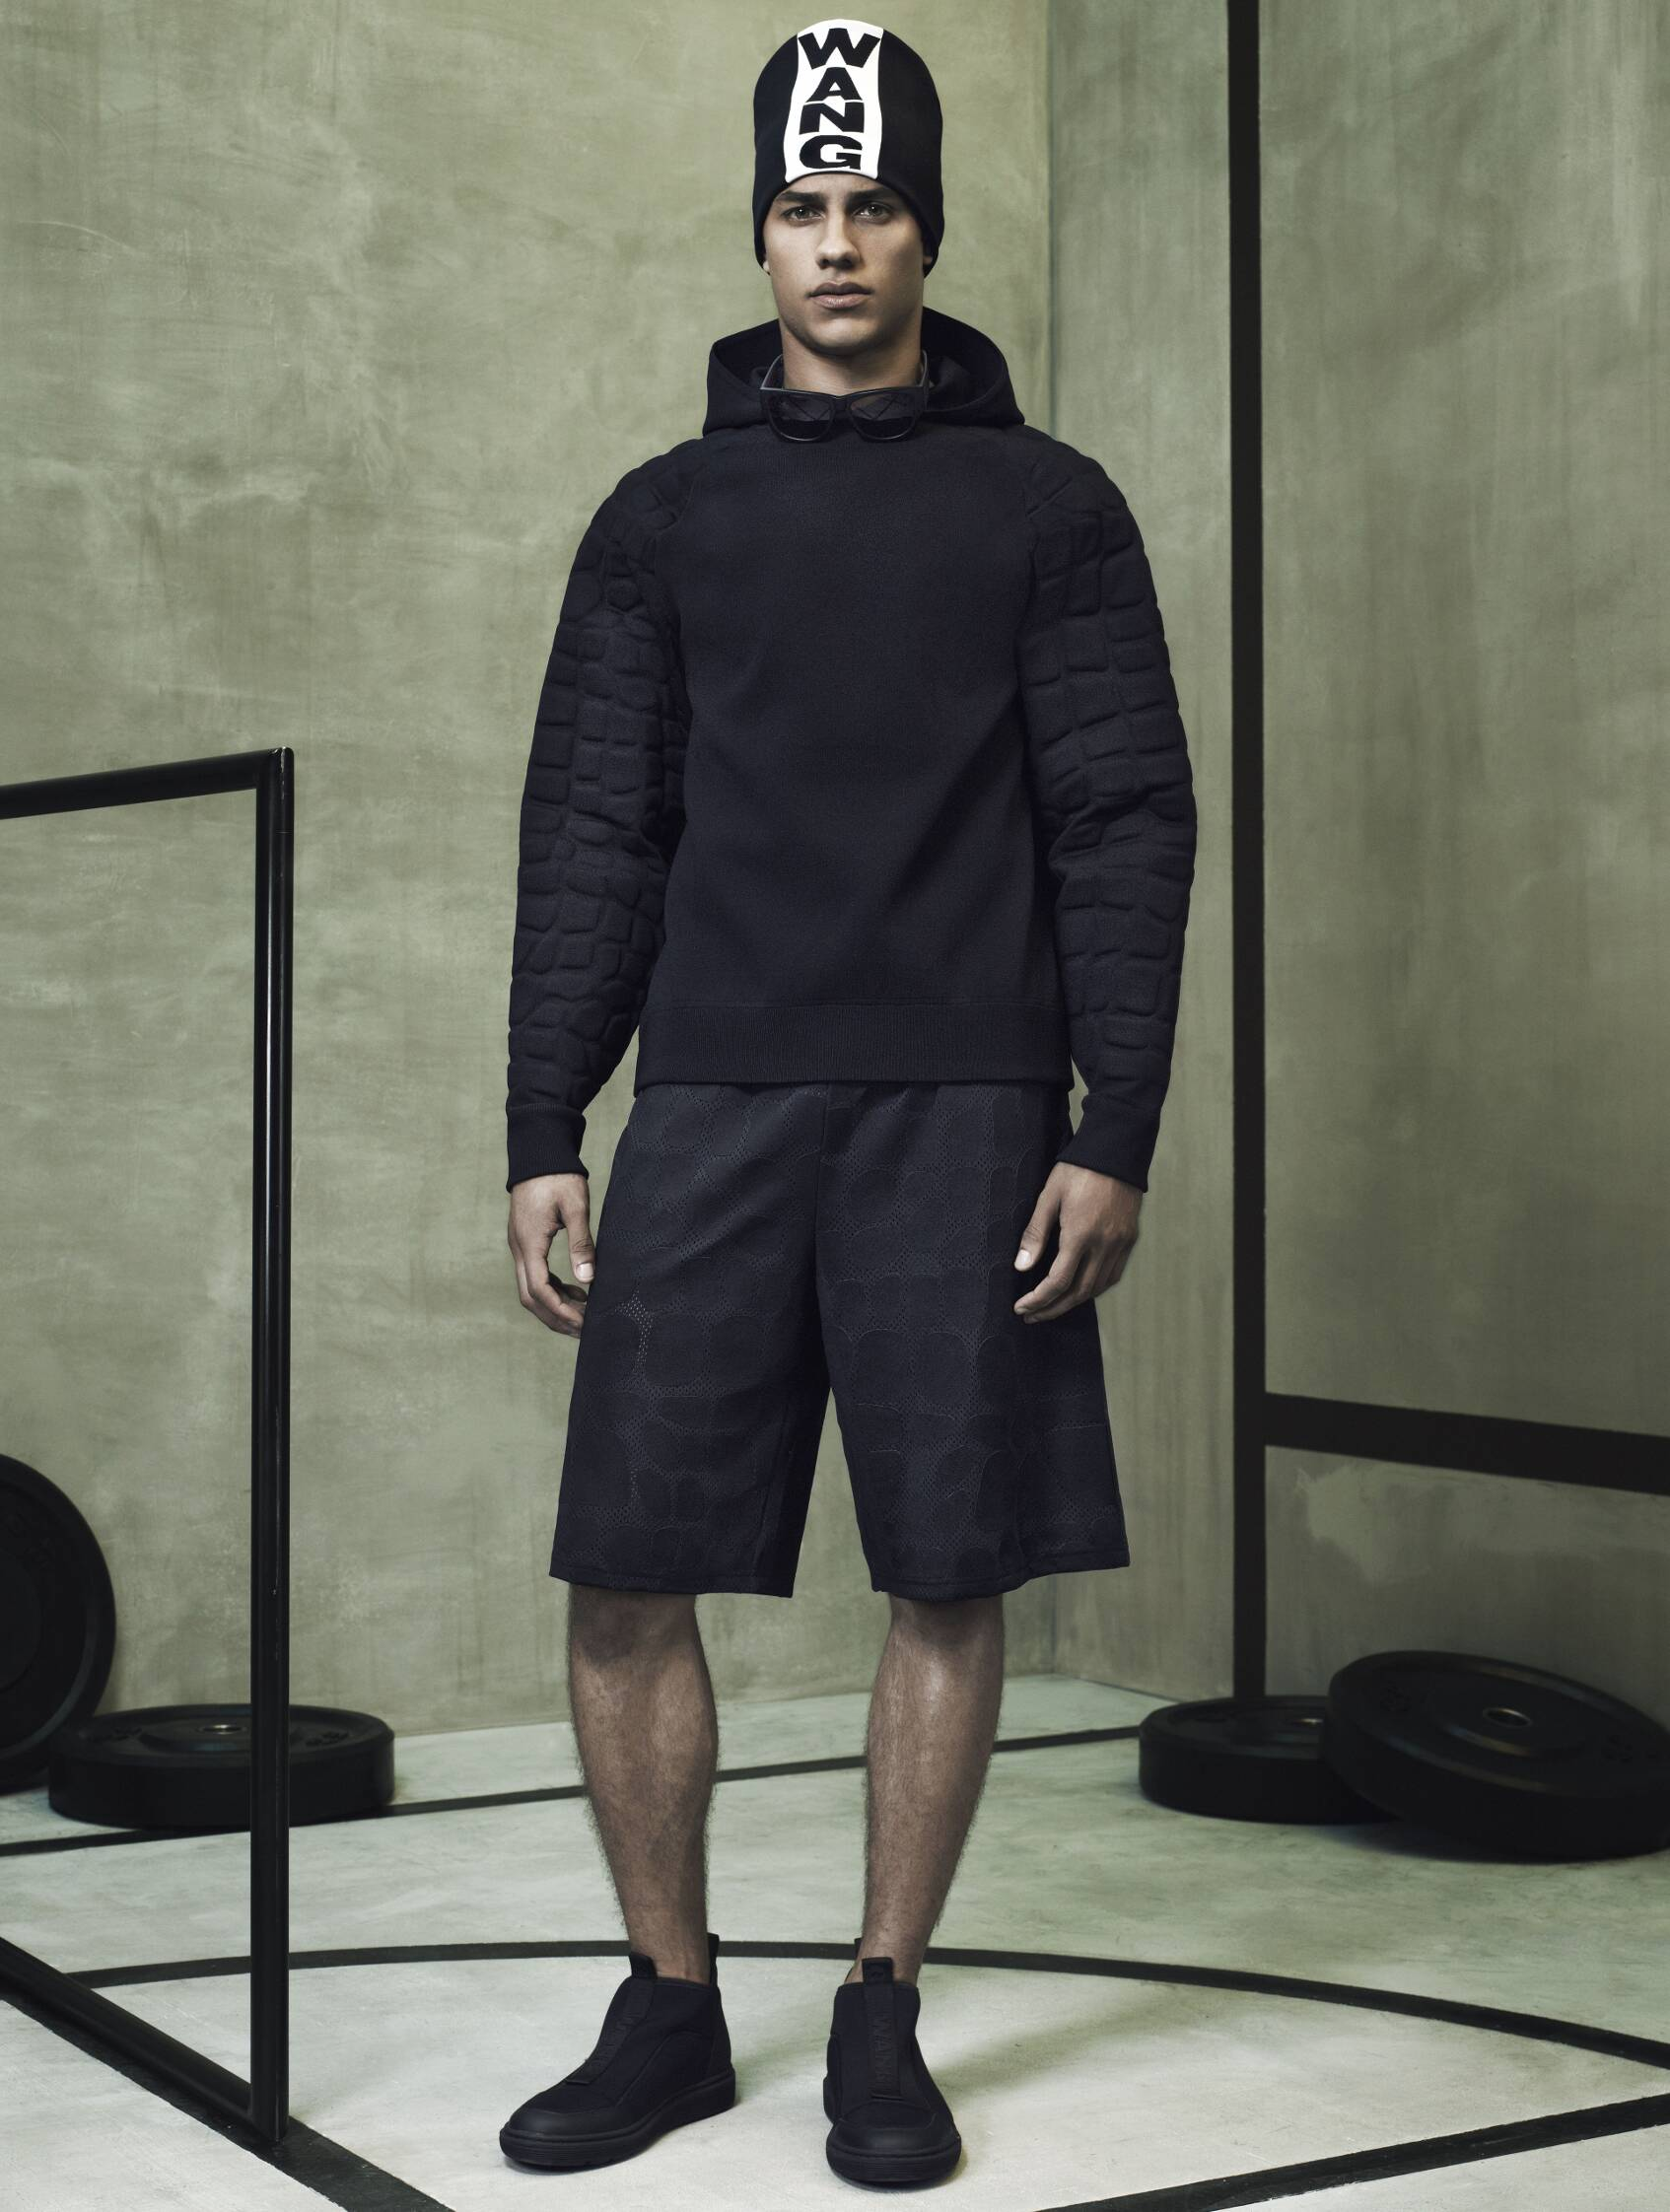 Man Model Alexander Wang for H&M